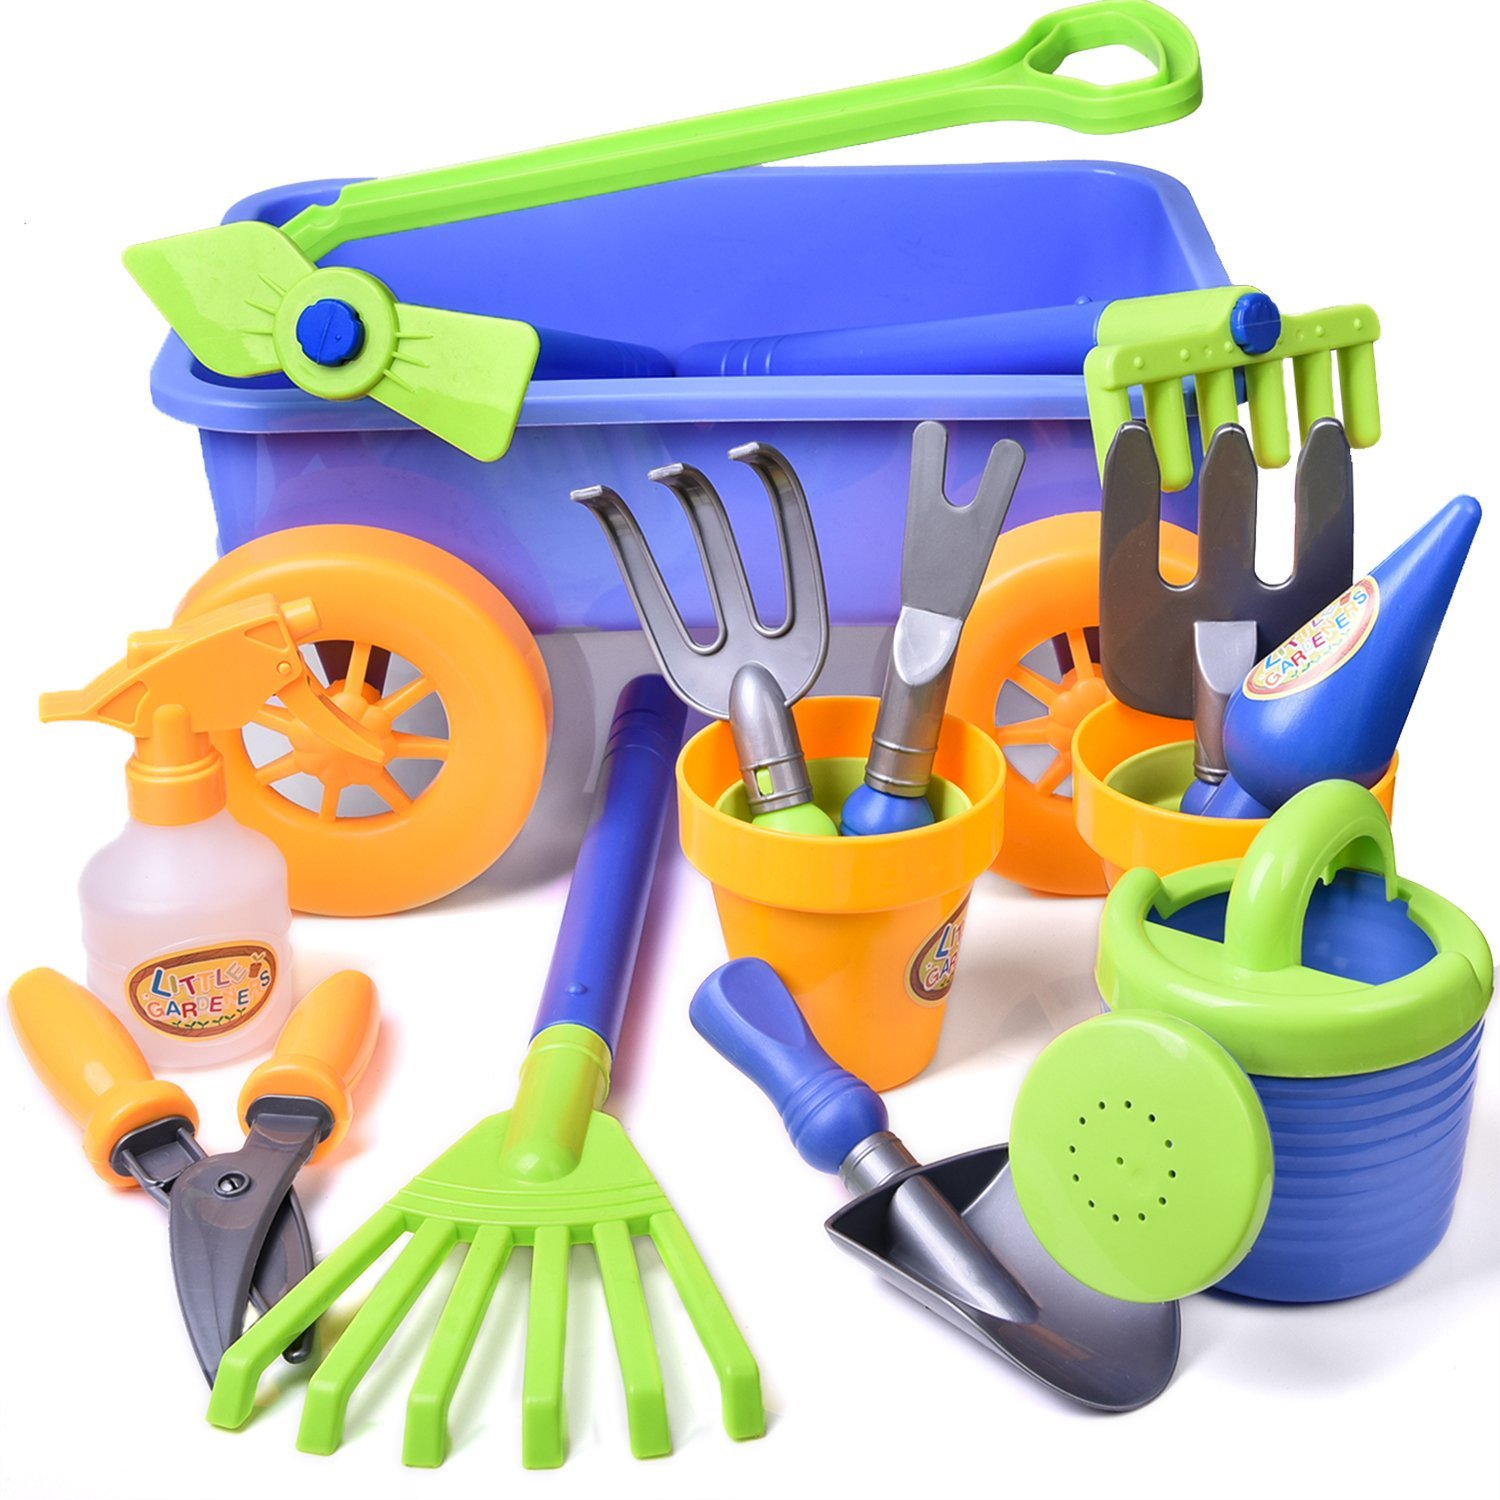 Kid's Garden Tool Toy Set Beach Sand Toy With Wagon Kids Outdoor Toys Gardening Backyard Tool Set with Watering Can, Shovels, Rakes, Bucket, Spray Bottle, Scissor, and 4 Castle Molds Packaged - 15 PCs